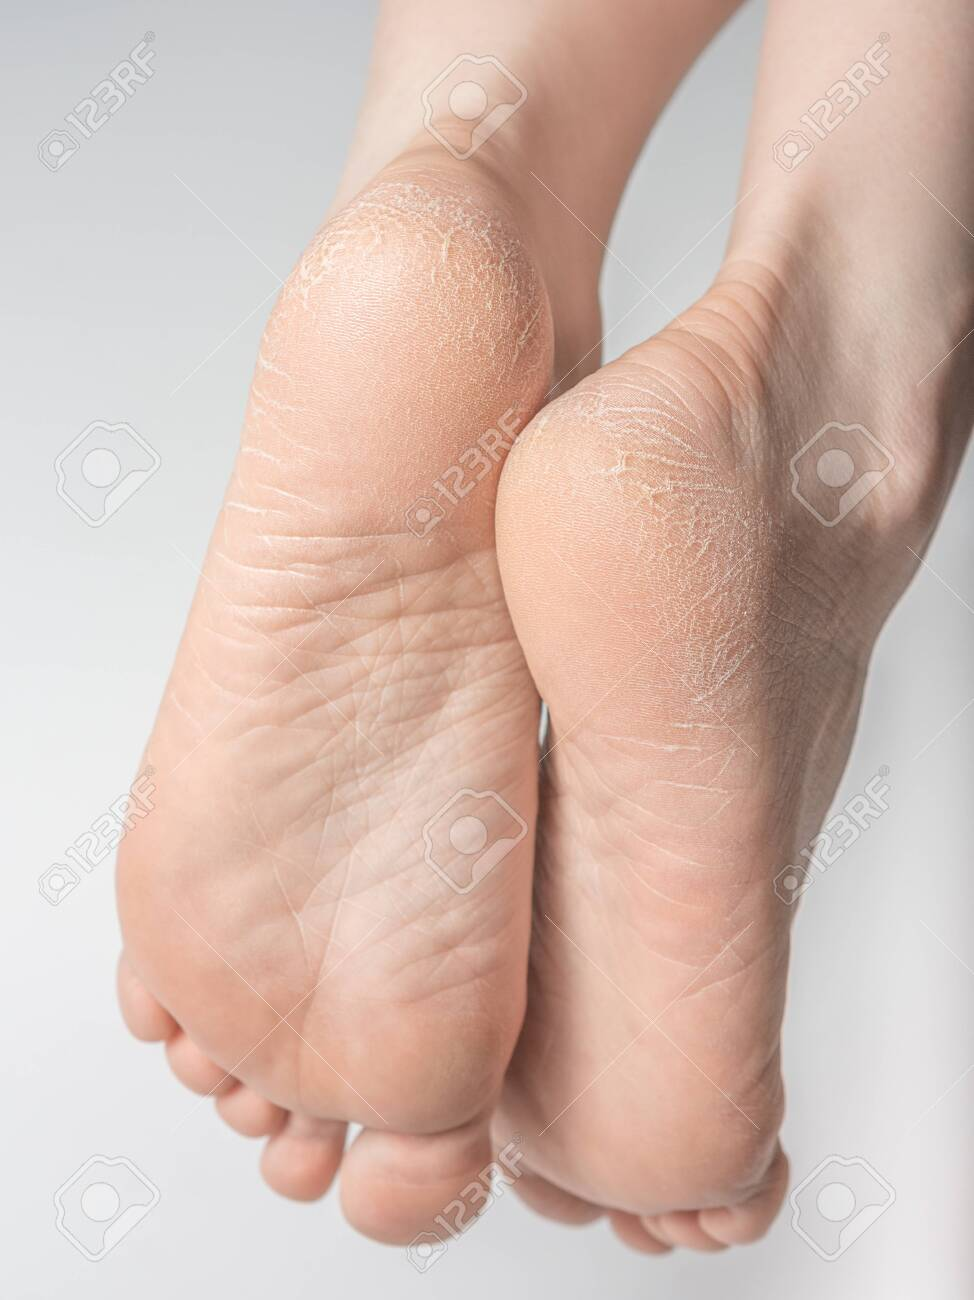 White Background. Foot Treatment